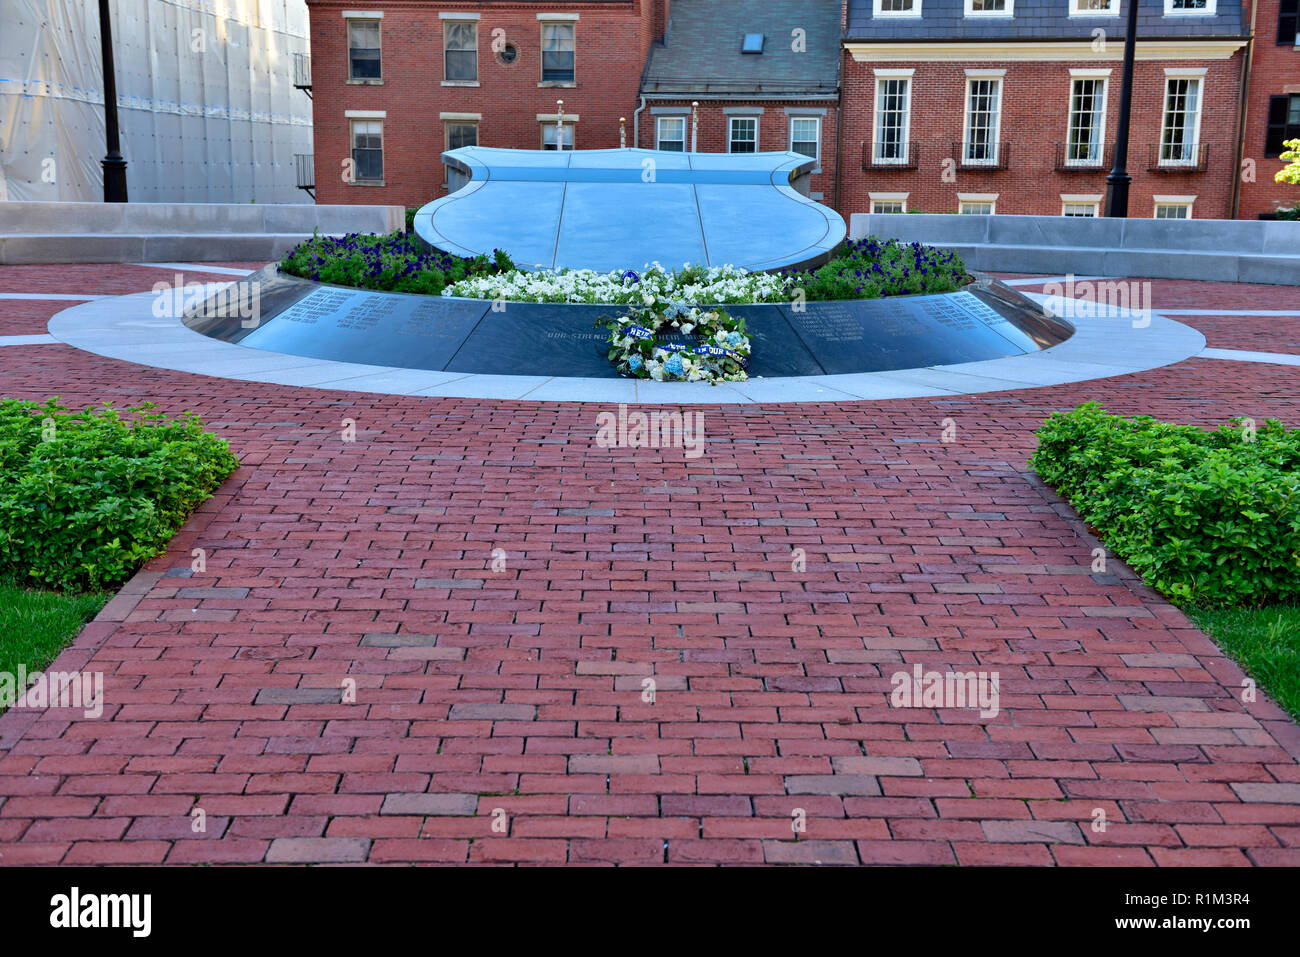 Massachusetts Law Enforcement Memorial to those killed when on duty, located in garden of Massachusetts State House, Boston - Stock Image